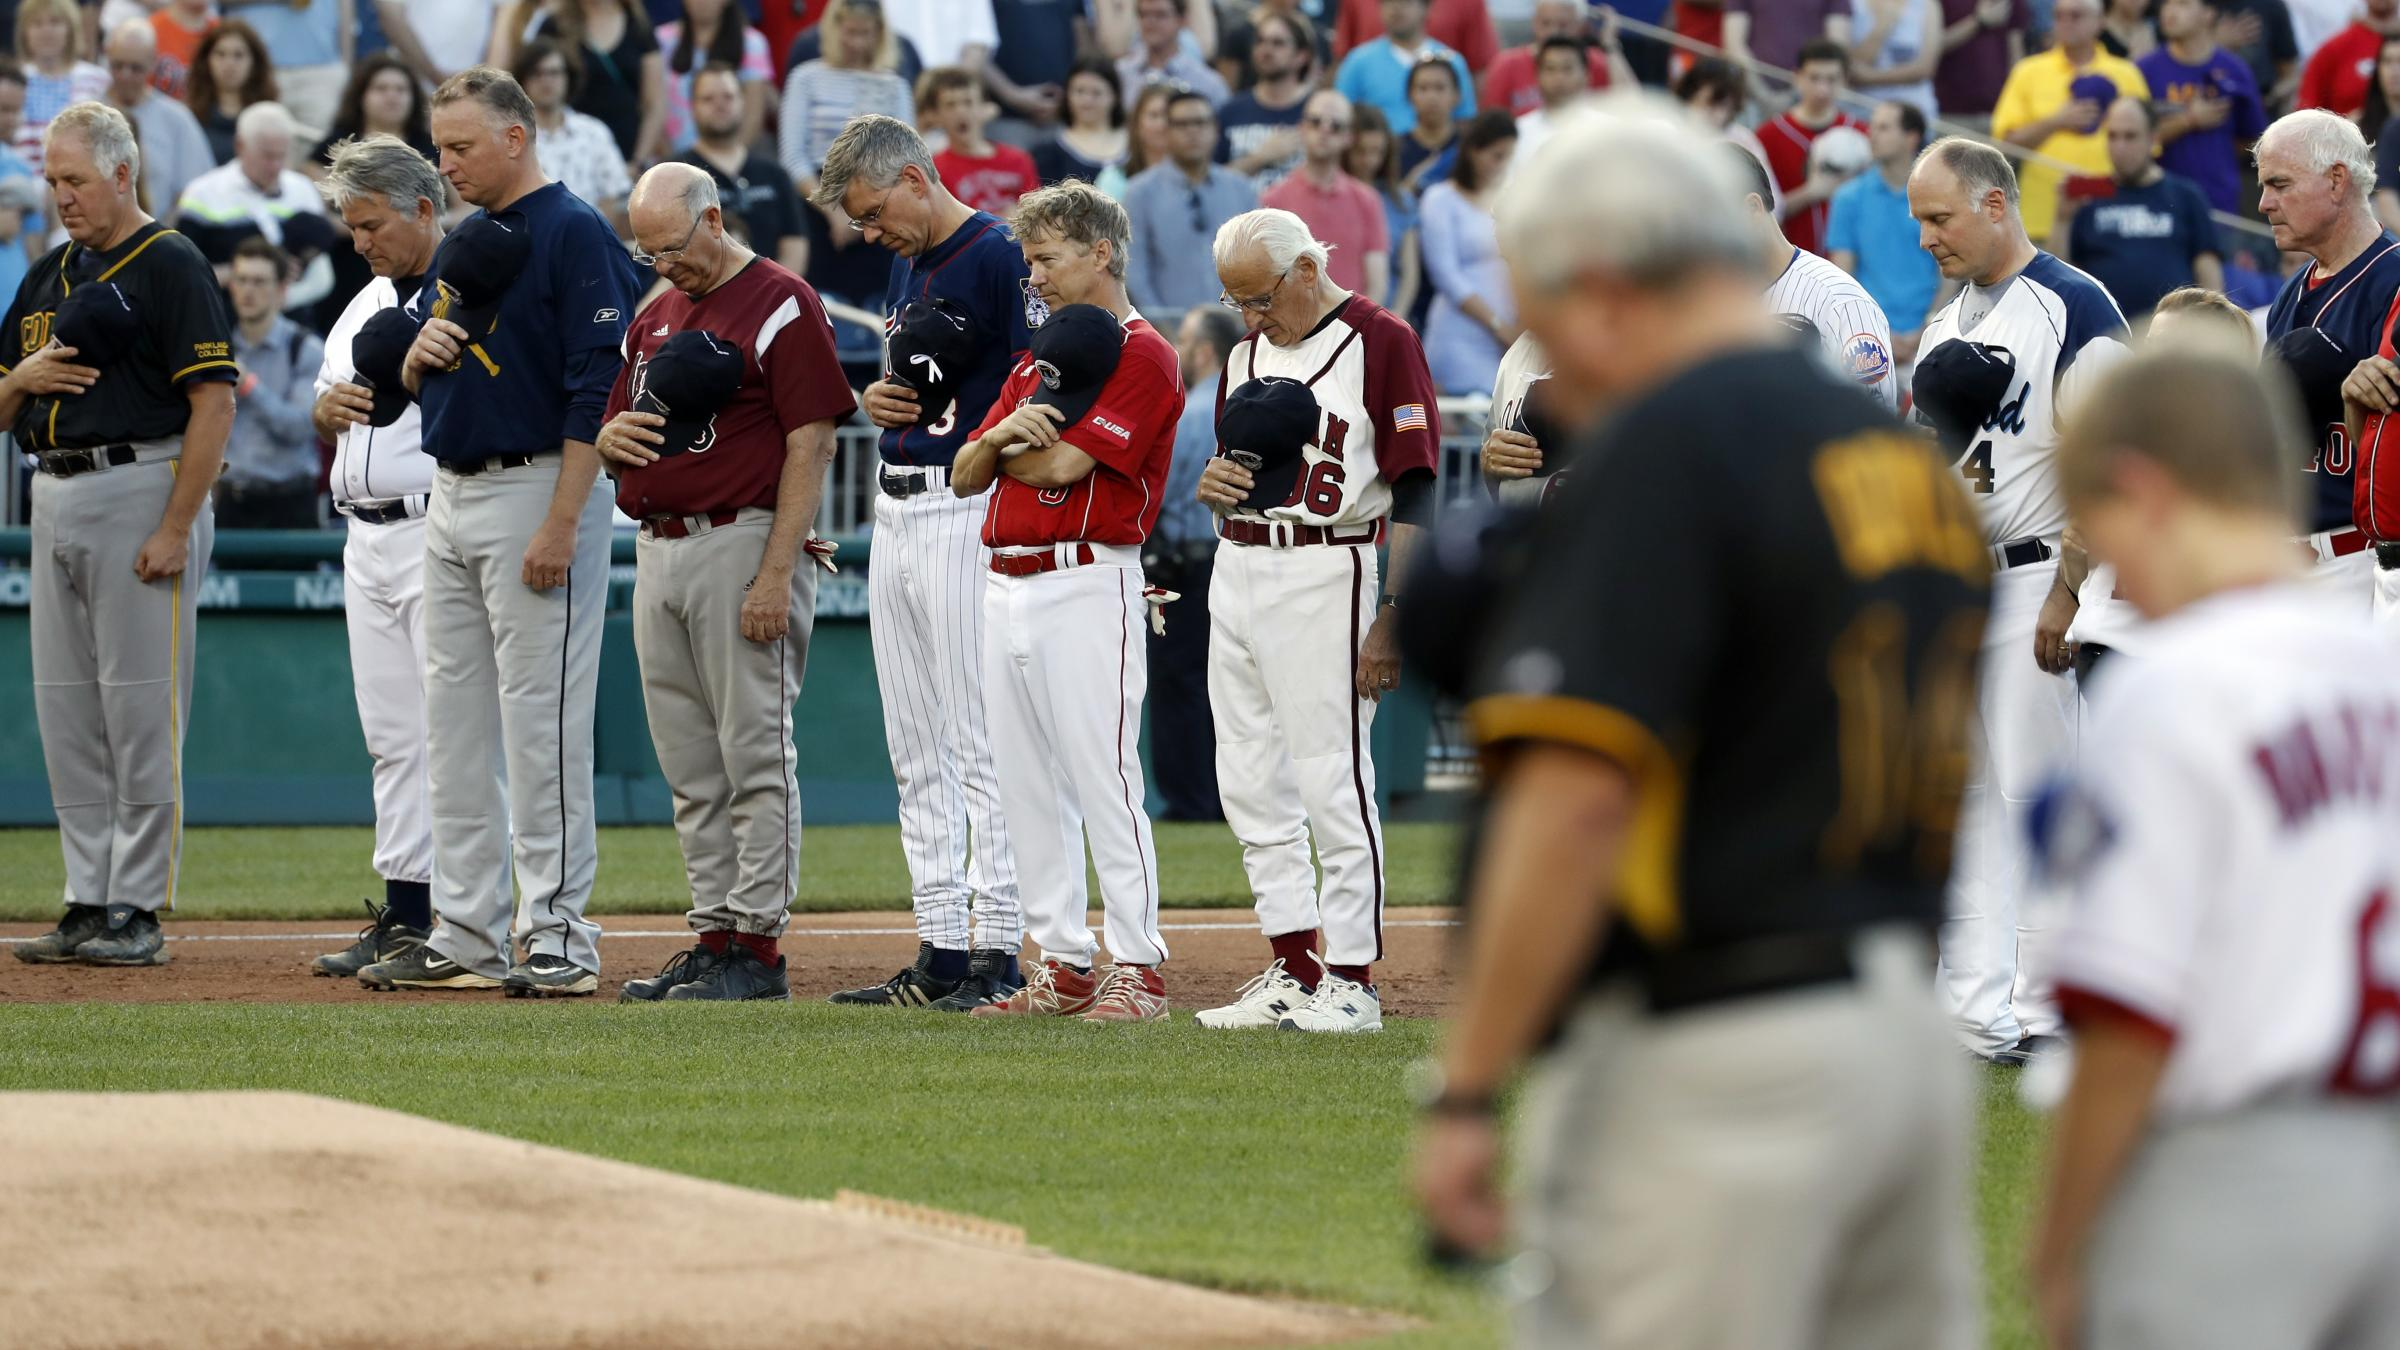 GOP Lawmaker Scalise Still Critical Though Doctors `Encouraged'